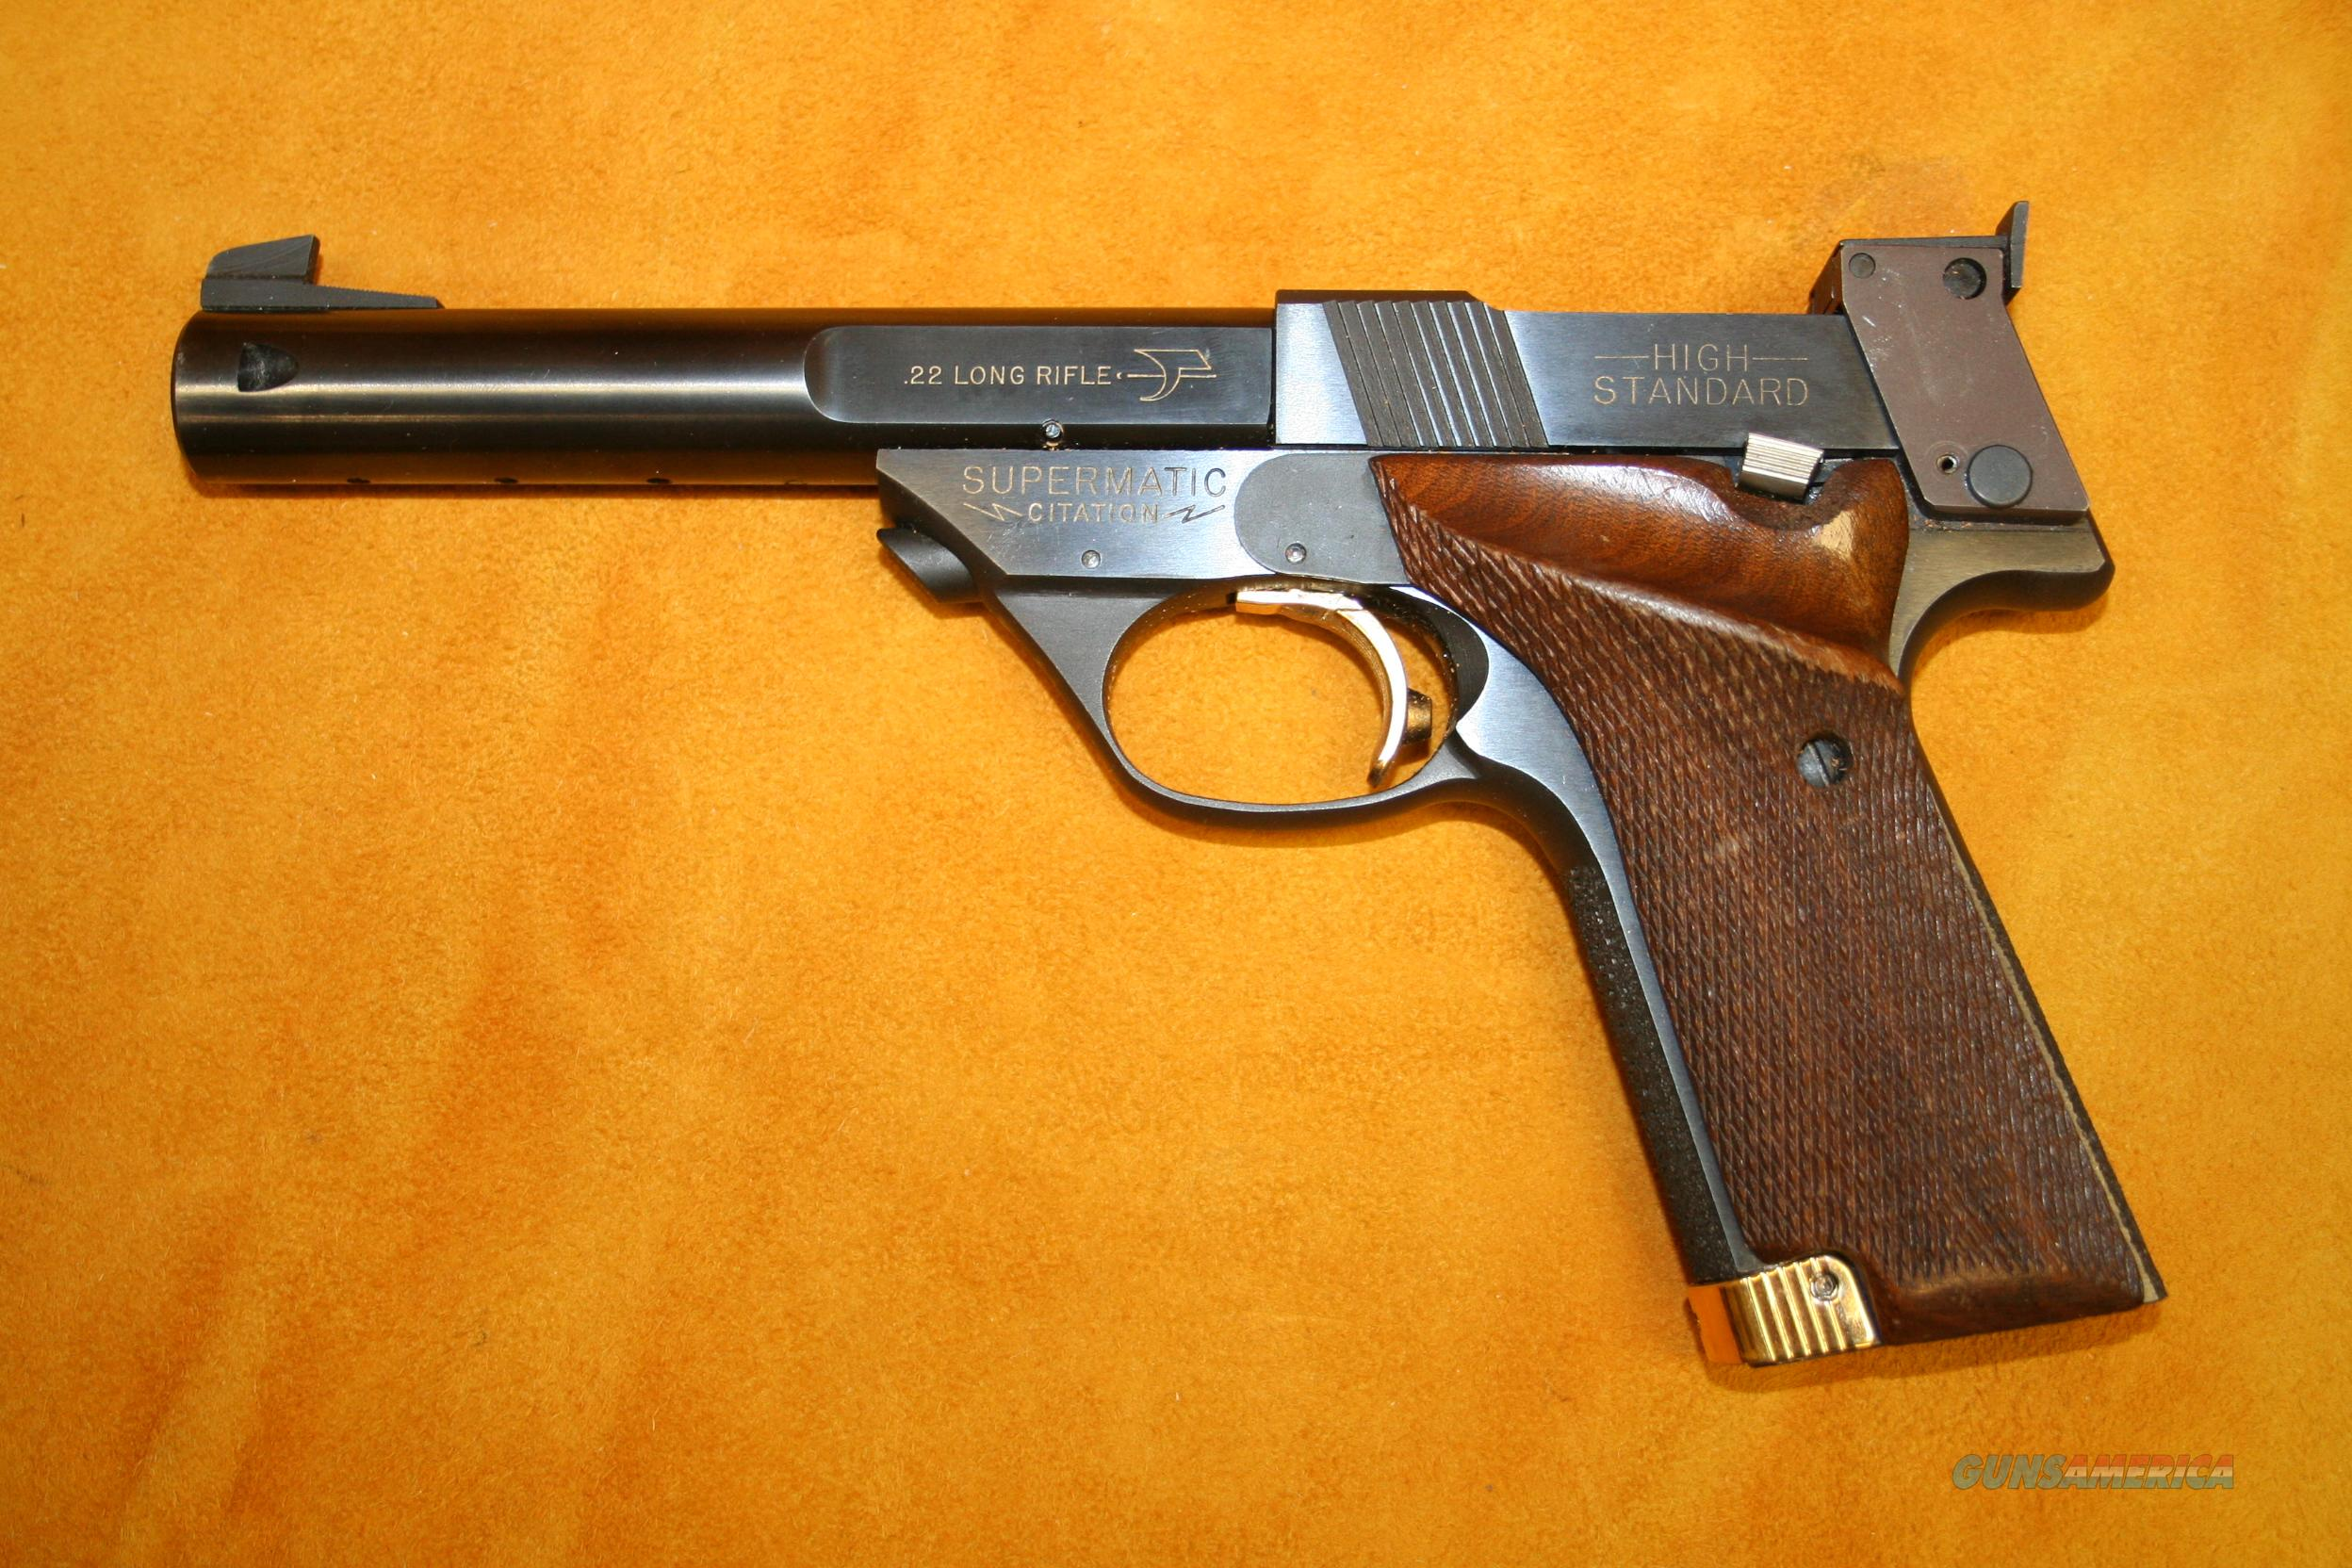 HIGH STANDARD SUPERMATIC CITATION .22 LONG RIFLE SEMI-AUTOMATIC PISTOL  Guns > Pistols > High Standard Pistols